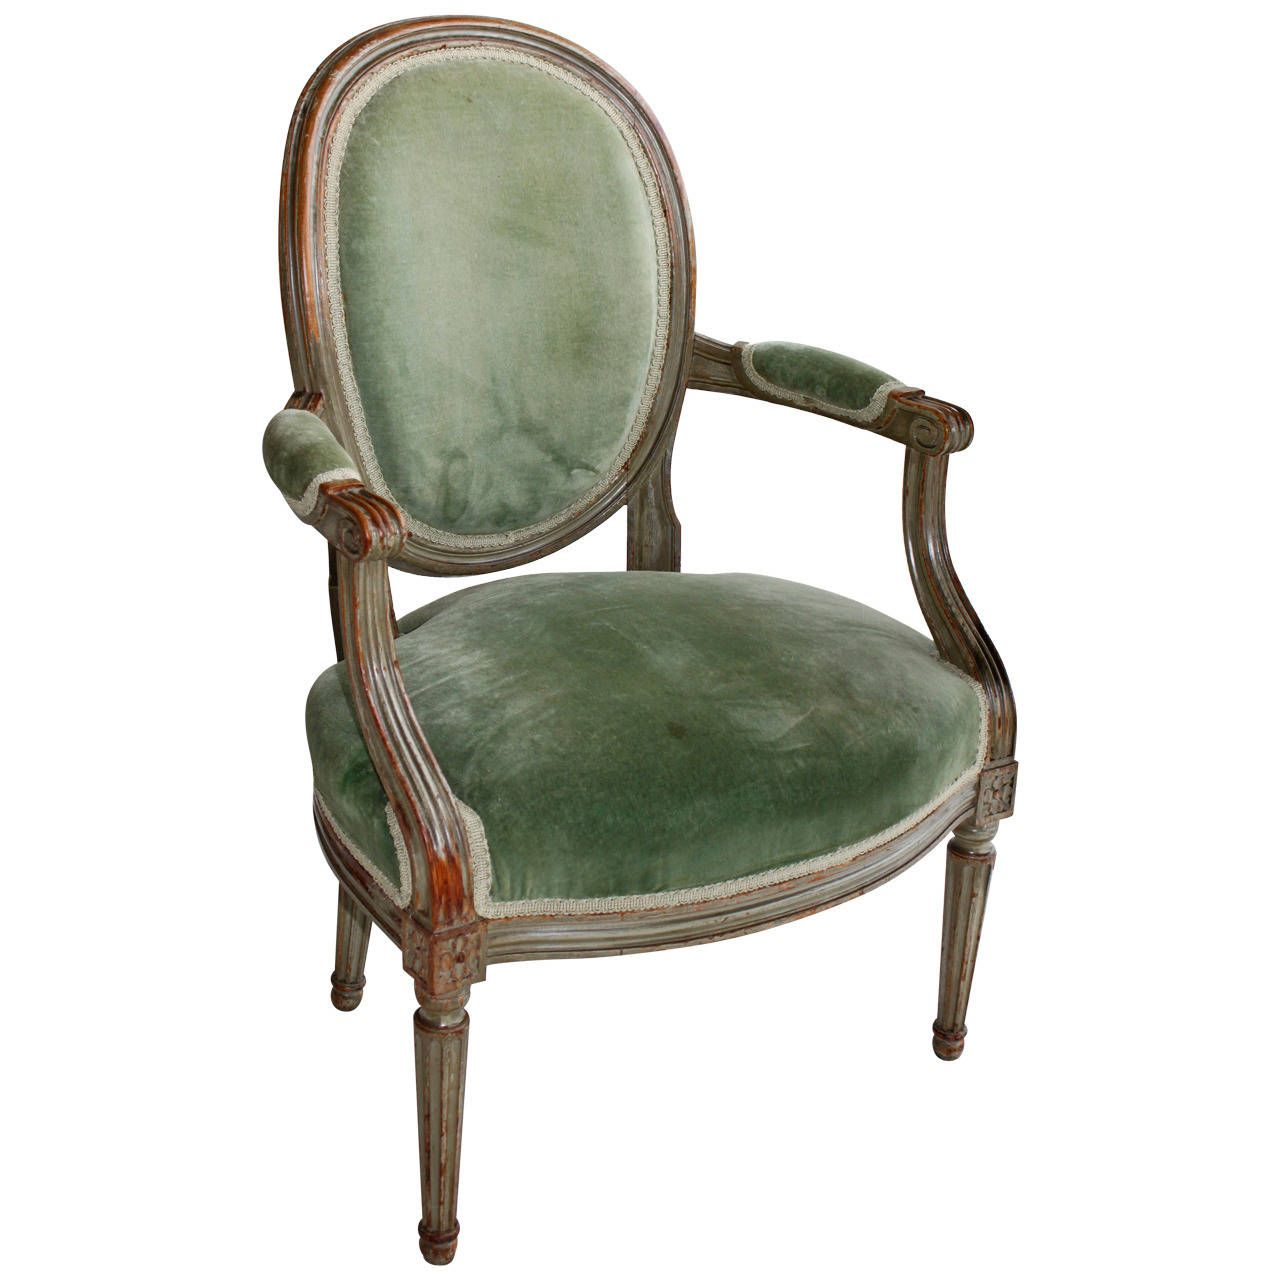 Louis XIV Fauteuil Chair | Modern chairs, Upholstery and Modern